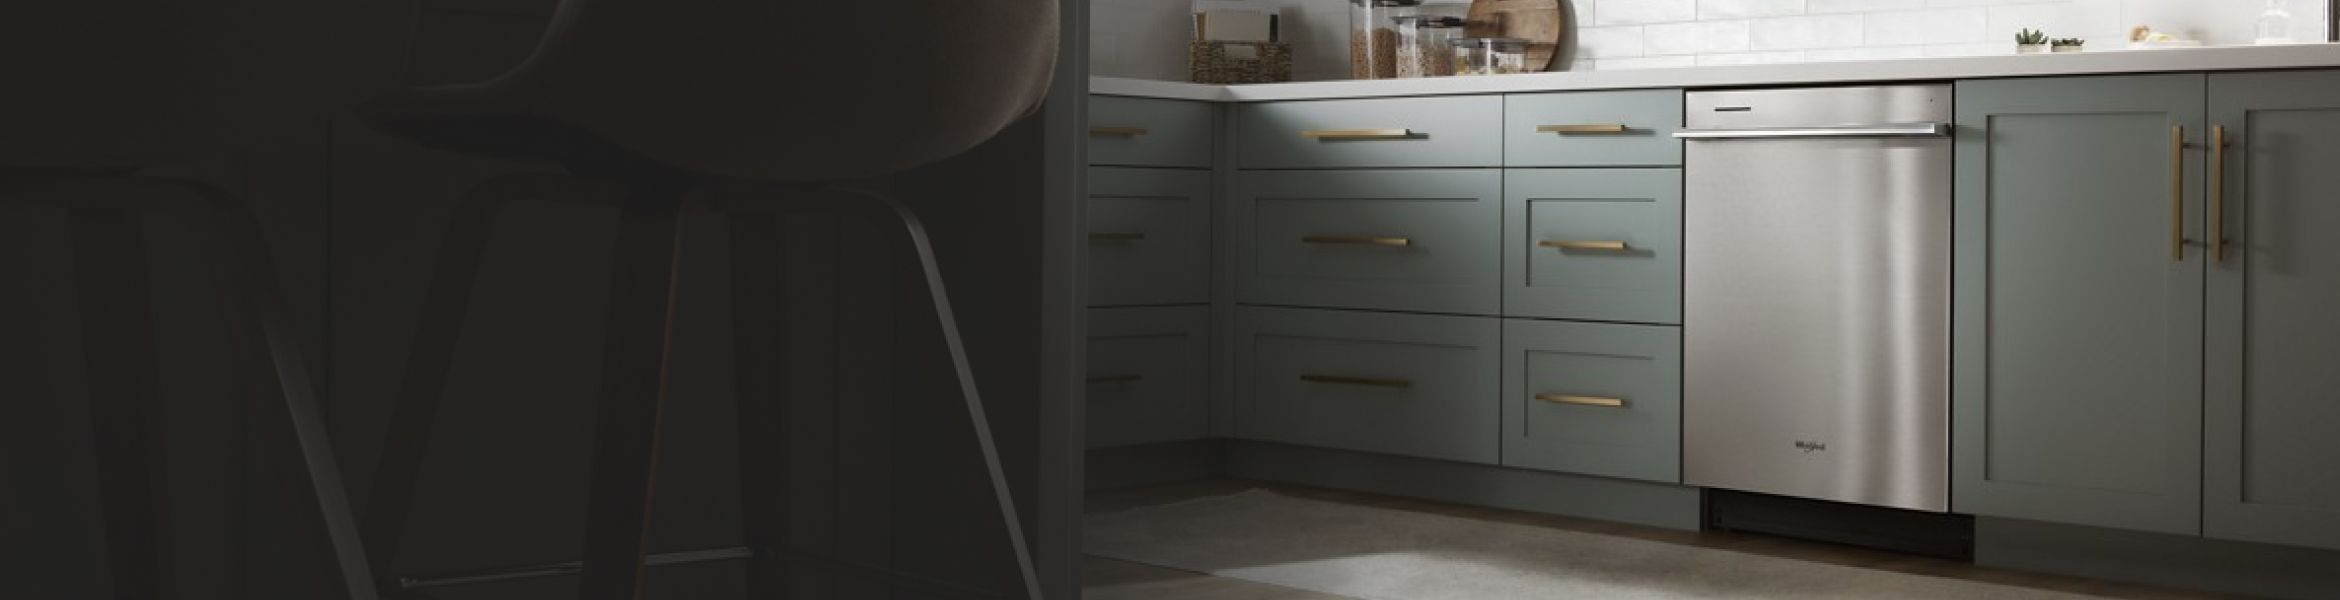 Whirlpool® Dishwasher featured in a kitchen